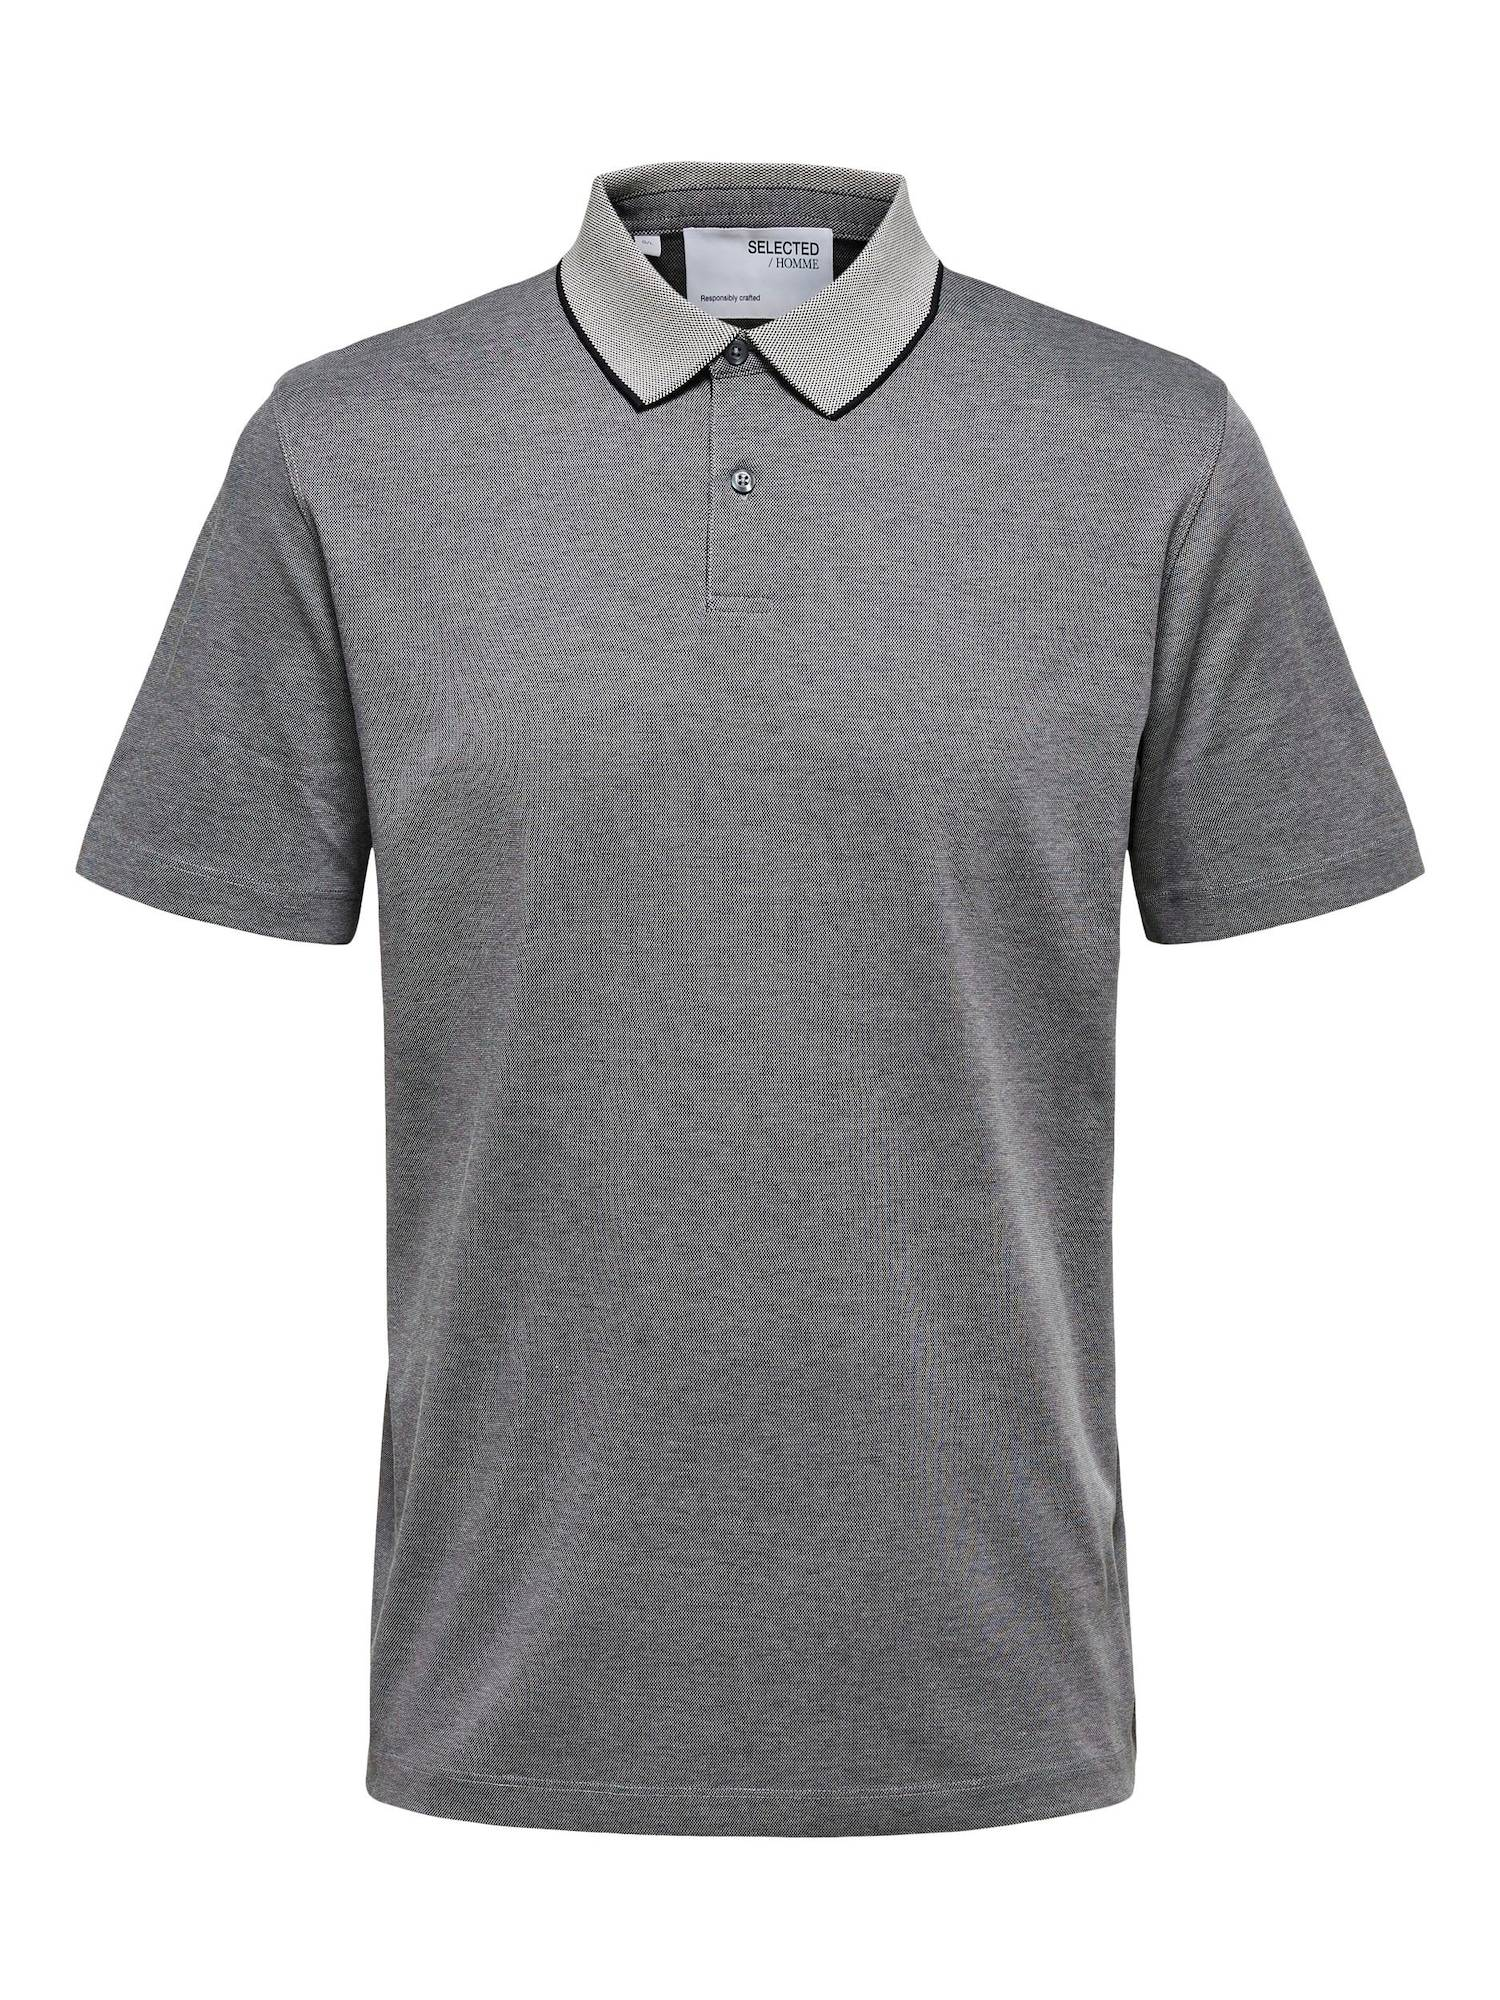 SELECTED HOMME T-Shirt 'Leroy'  - Gris - Taille: M - male